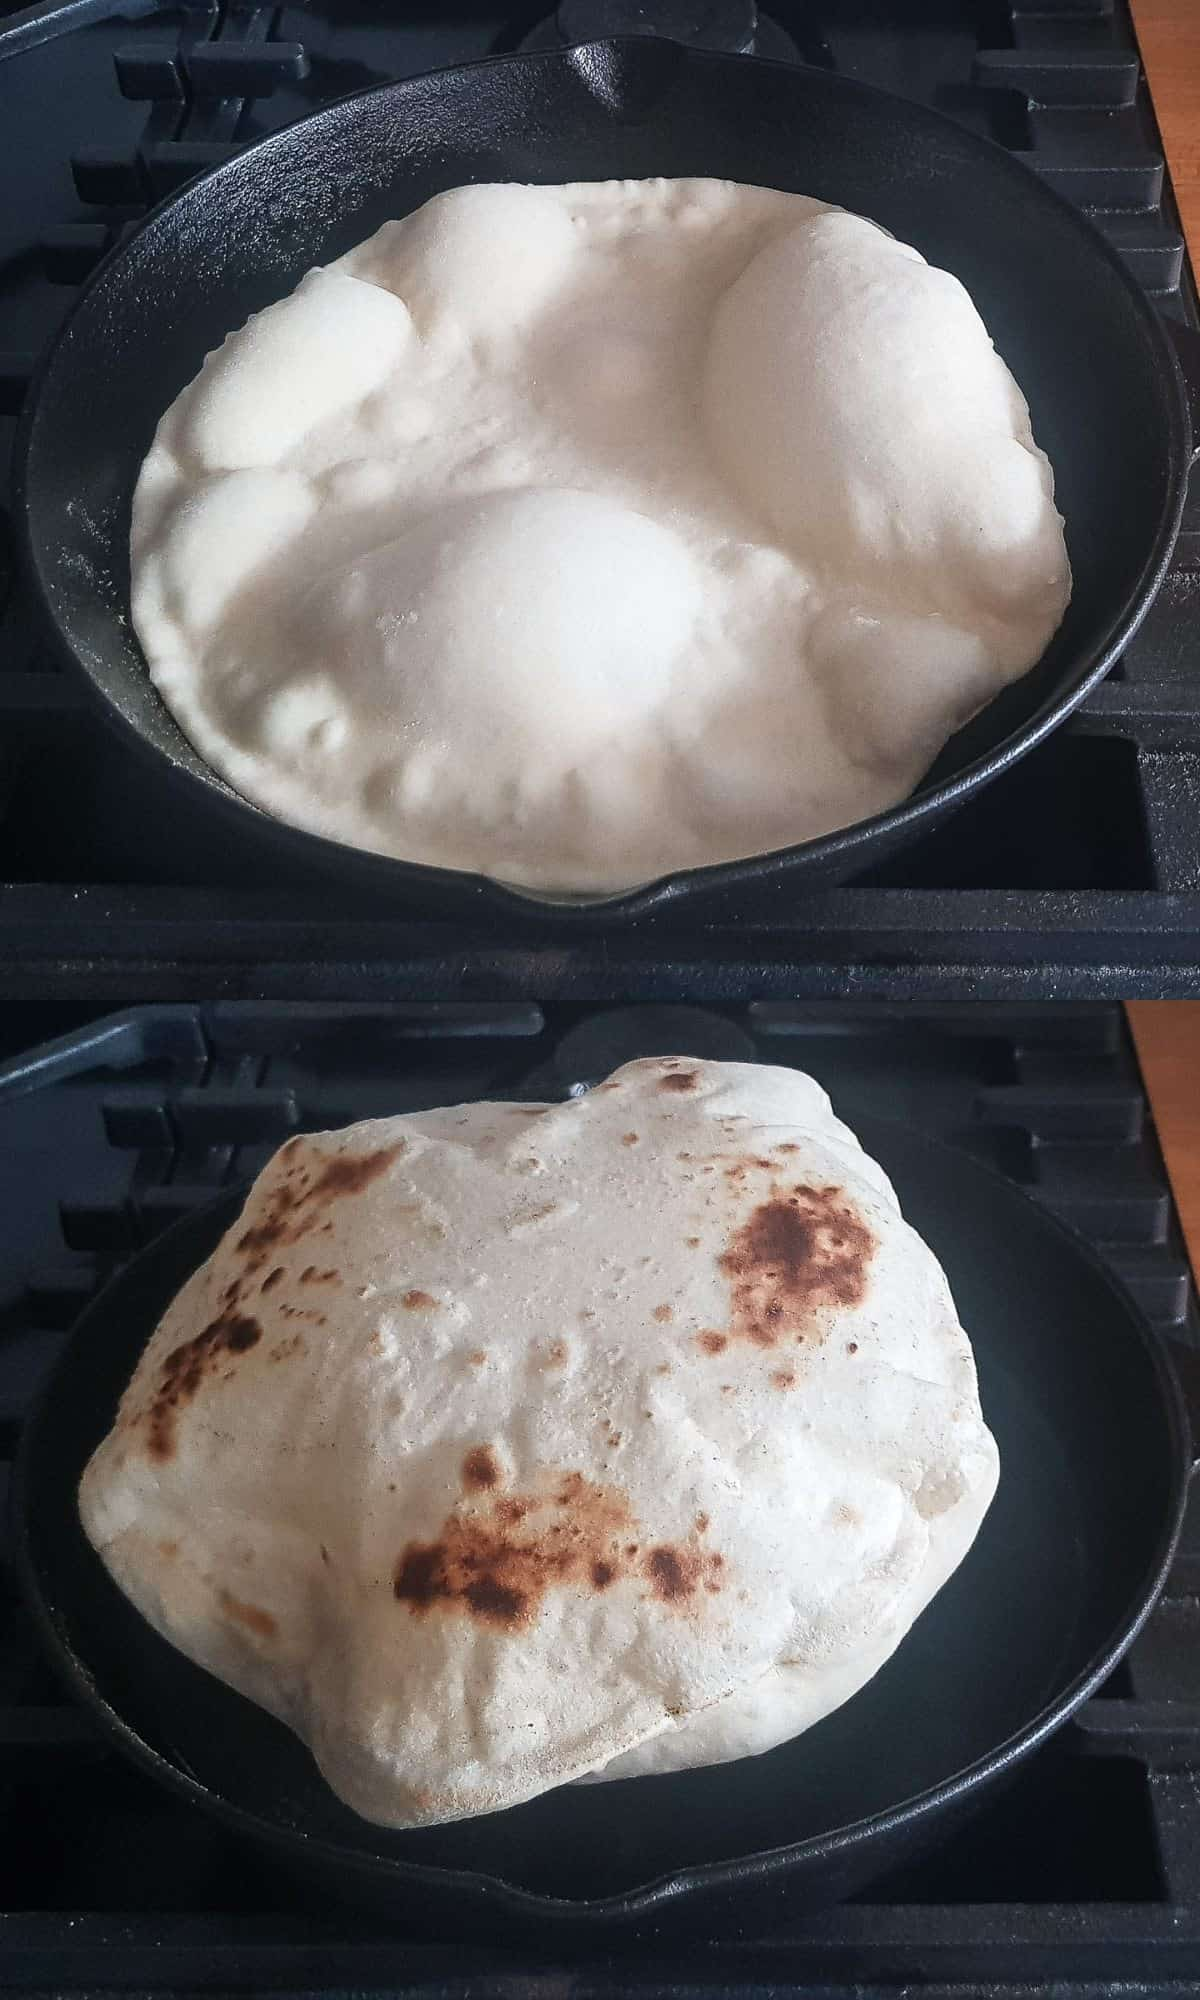 step 3 - cooking the flatbreads